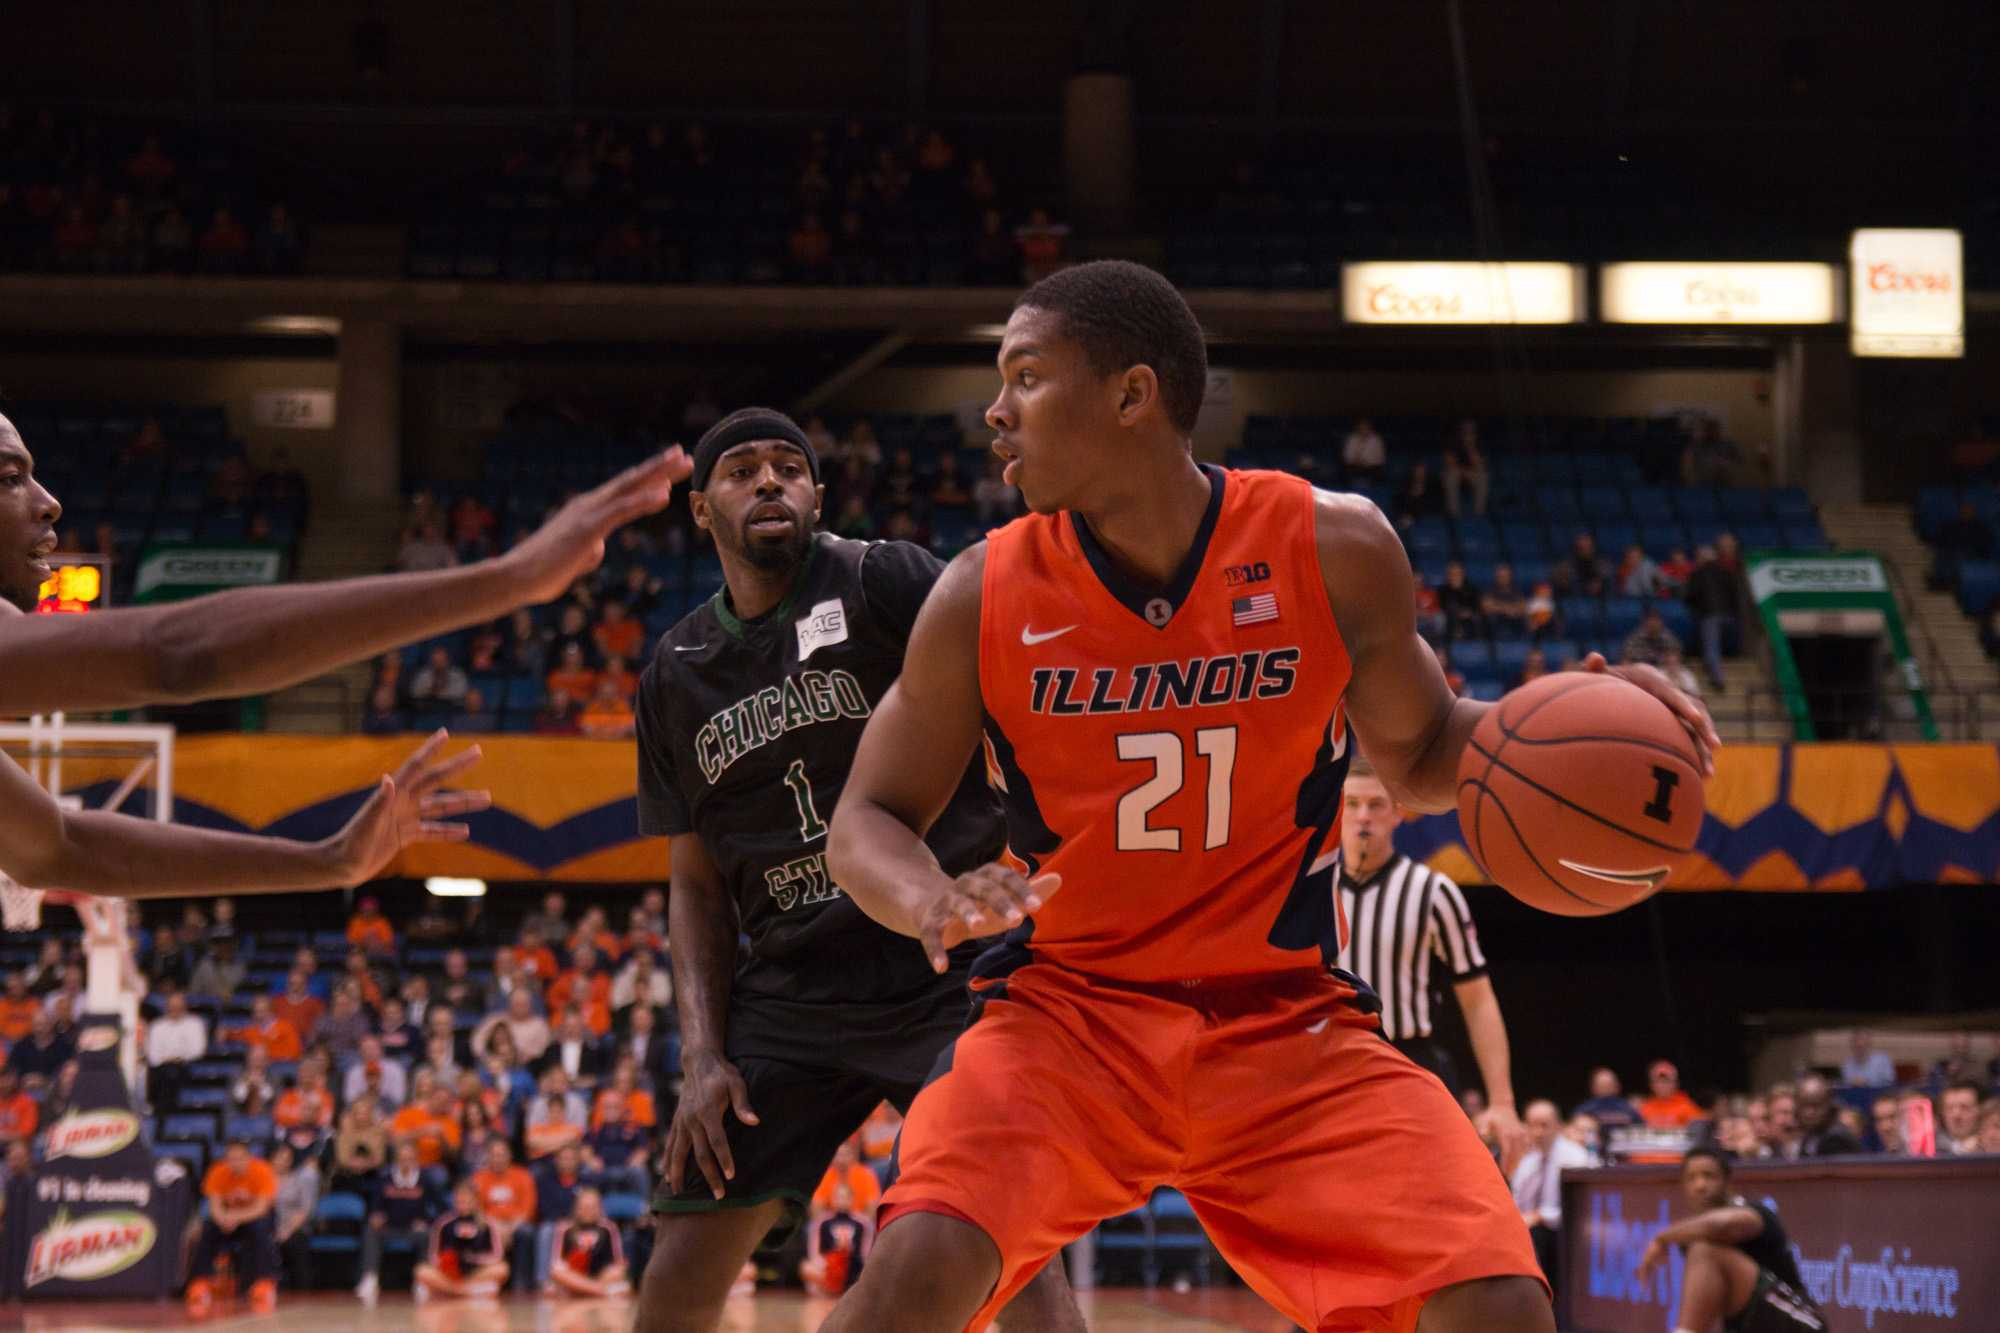 Illinois' Malcolm Hill(21) looks to pass the ball during the game against Chicago State at the Prairie Capital Convention Center in Springfield, Illinois, on Monday, November 23, 2015. The Illini won 82-79.